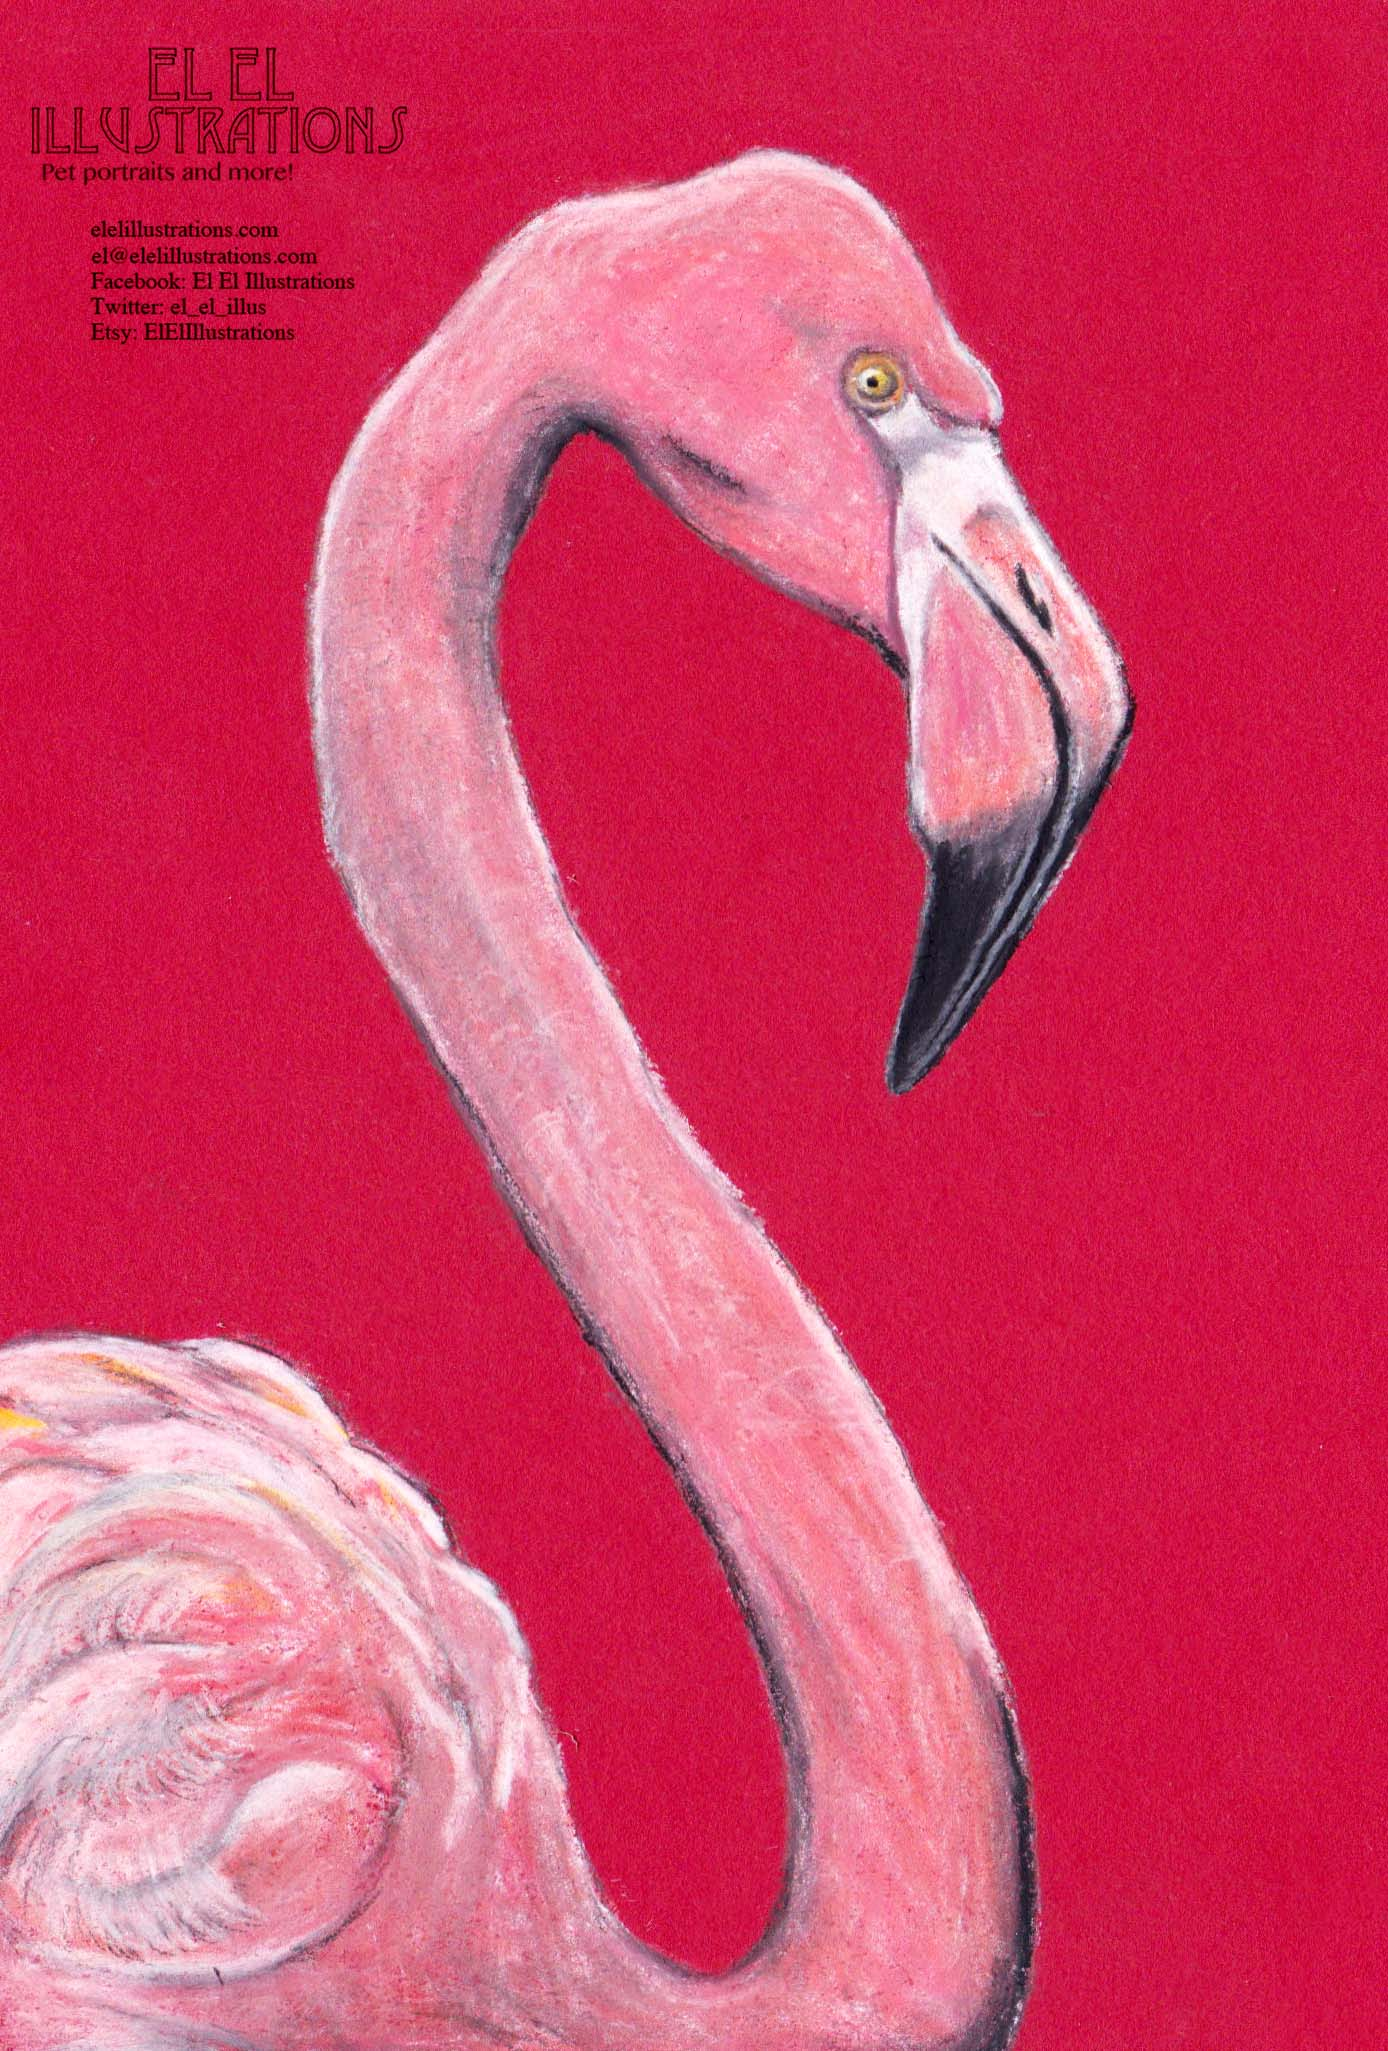 flamingo3_wm.jpg